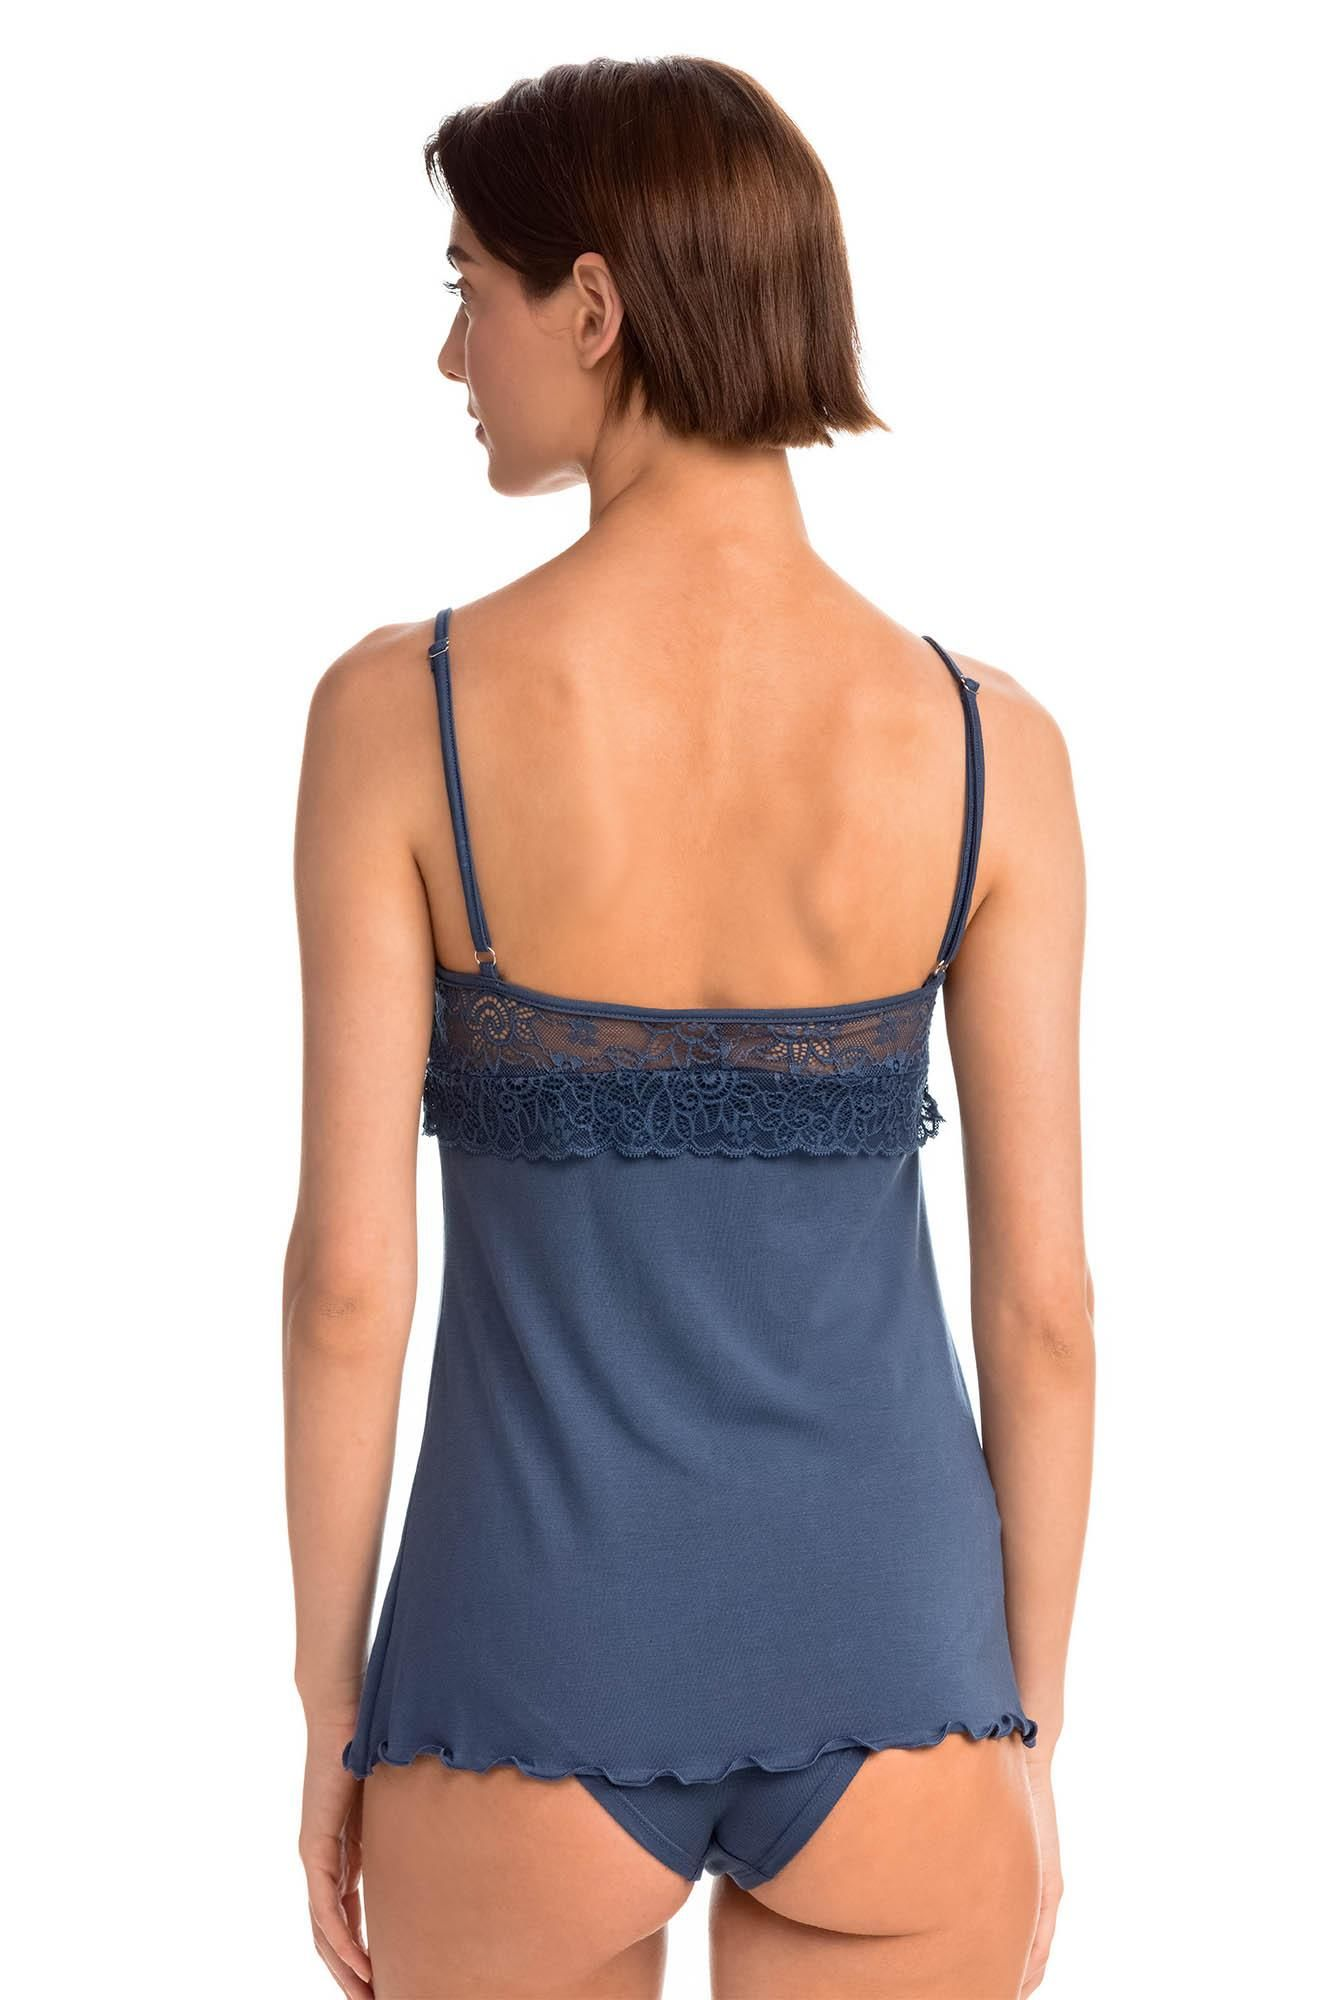 Camisole with Floral Lace